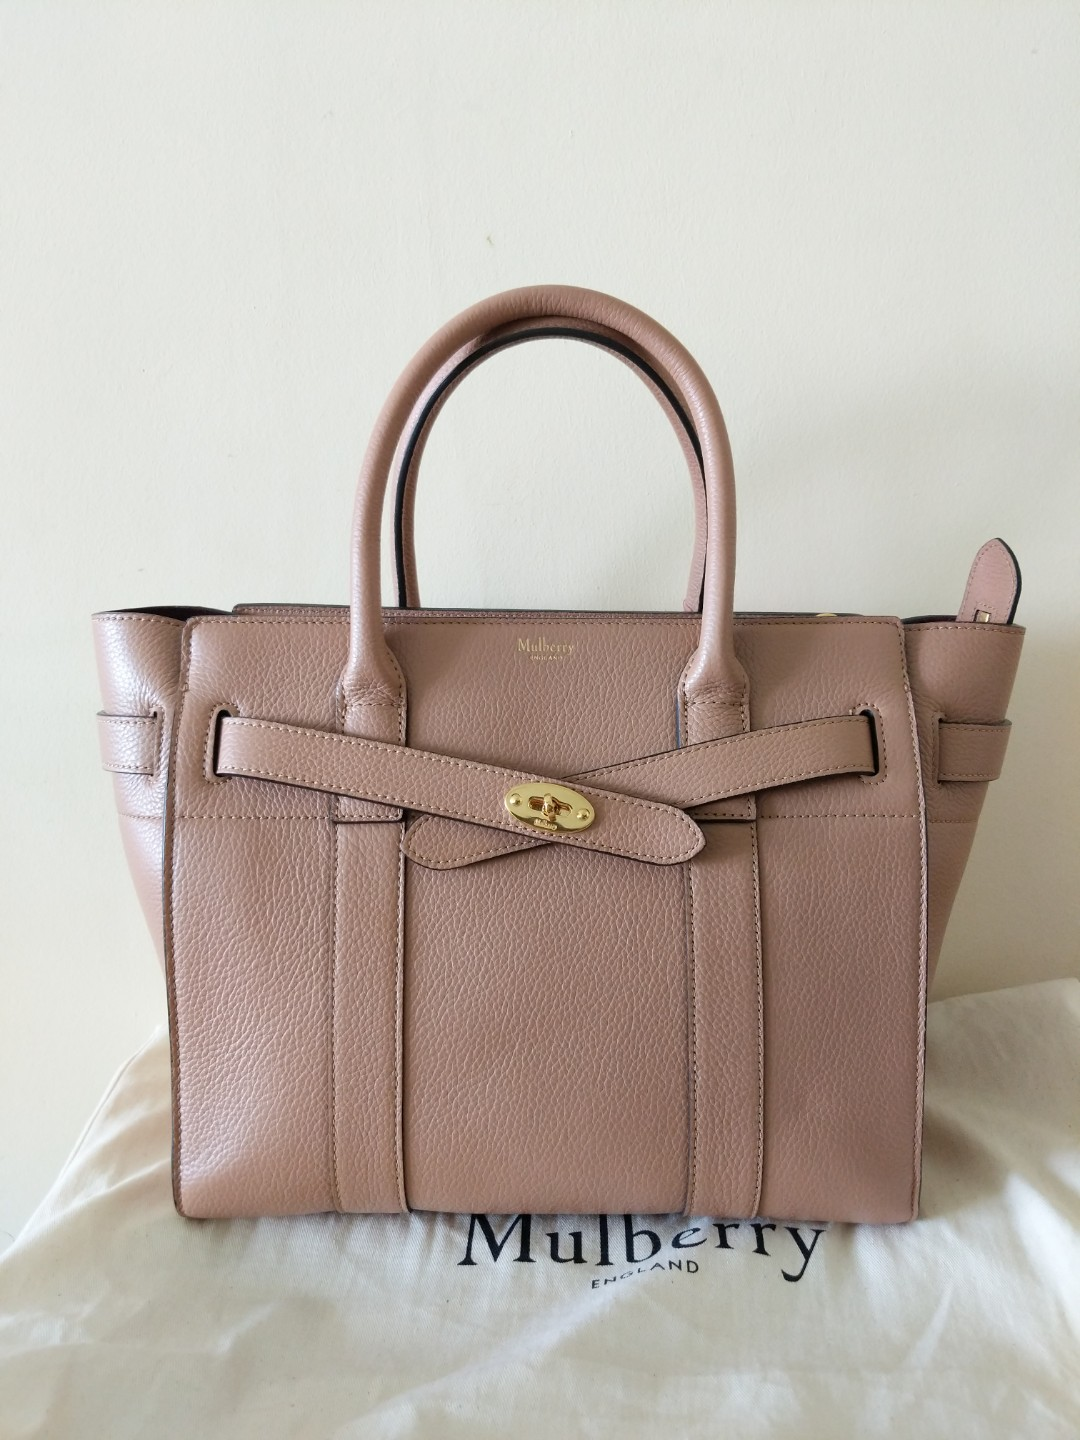 845a6f0ebe5 BNWT Mulberry Zipped Bayswater Tote (full set), Luxury, Bags ...